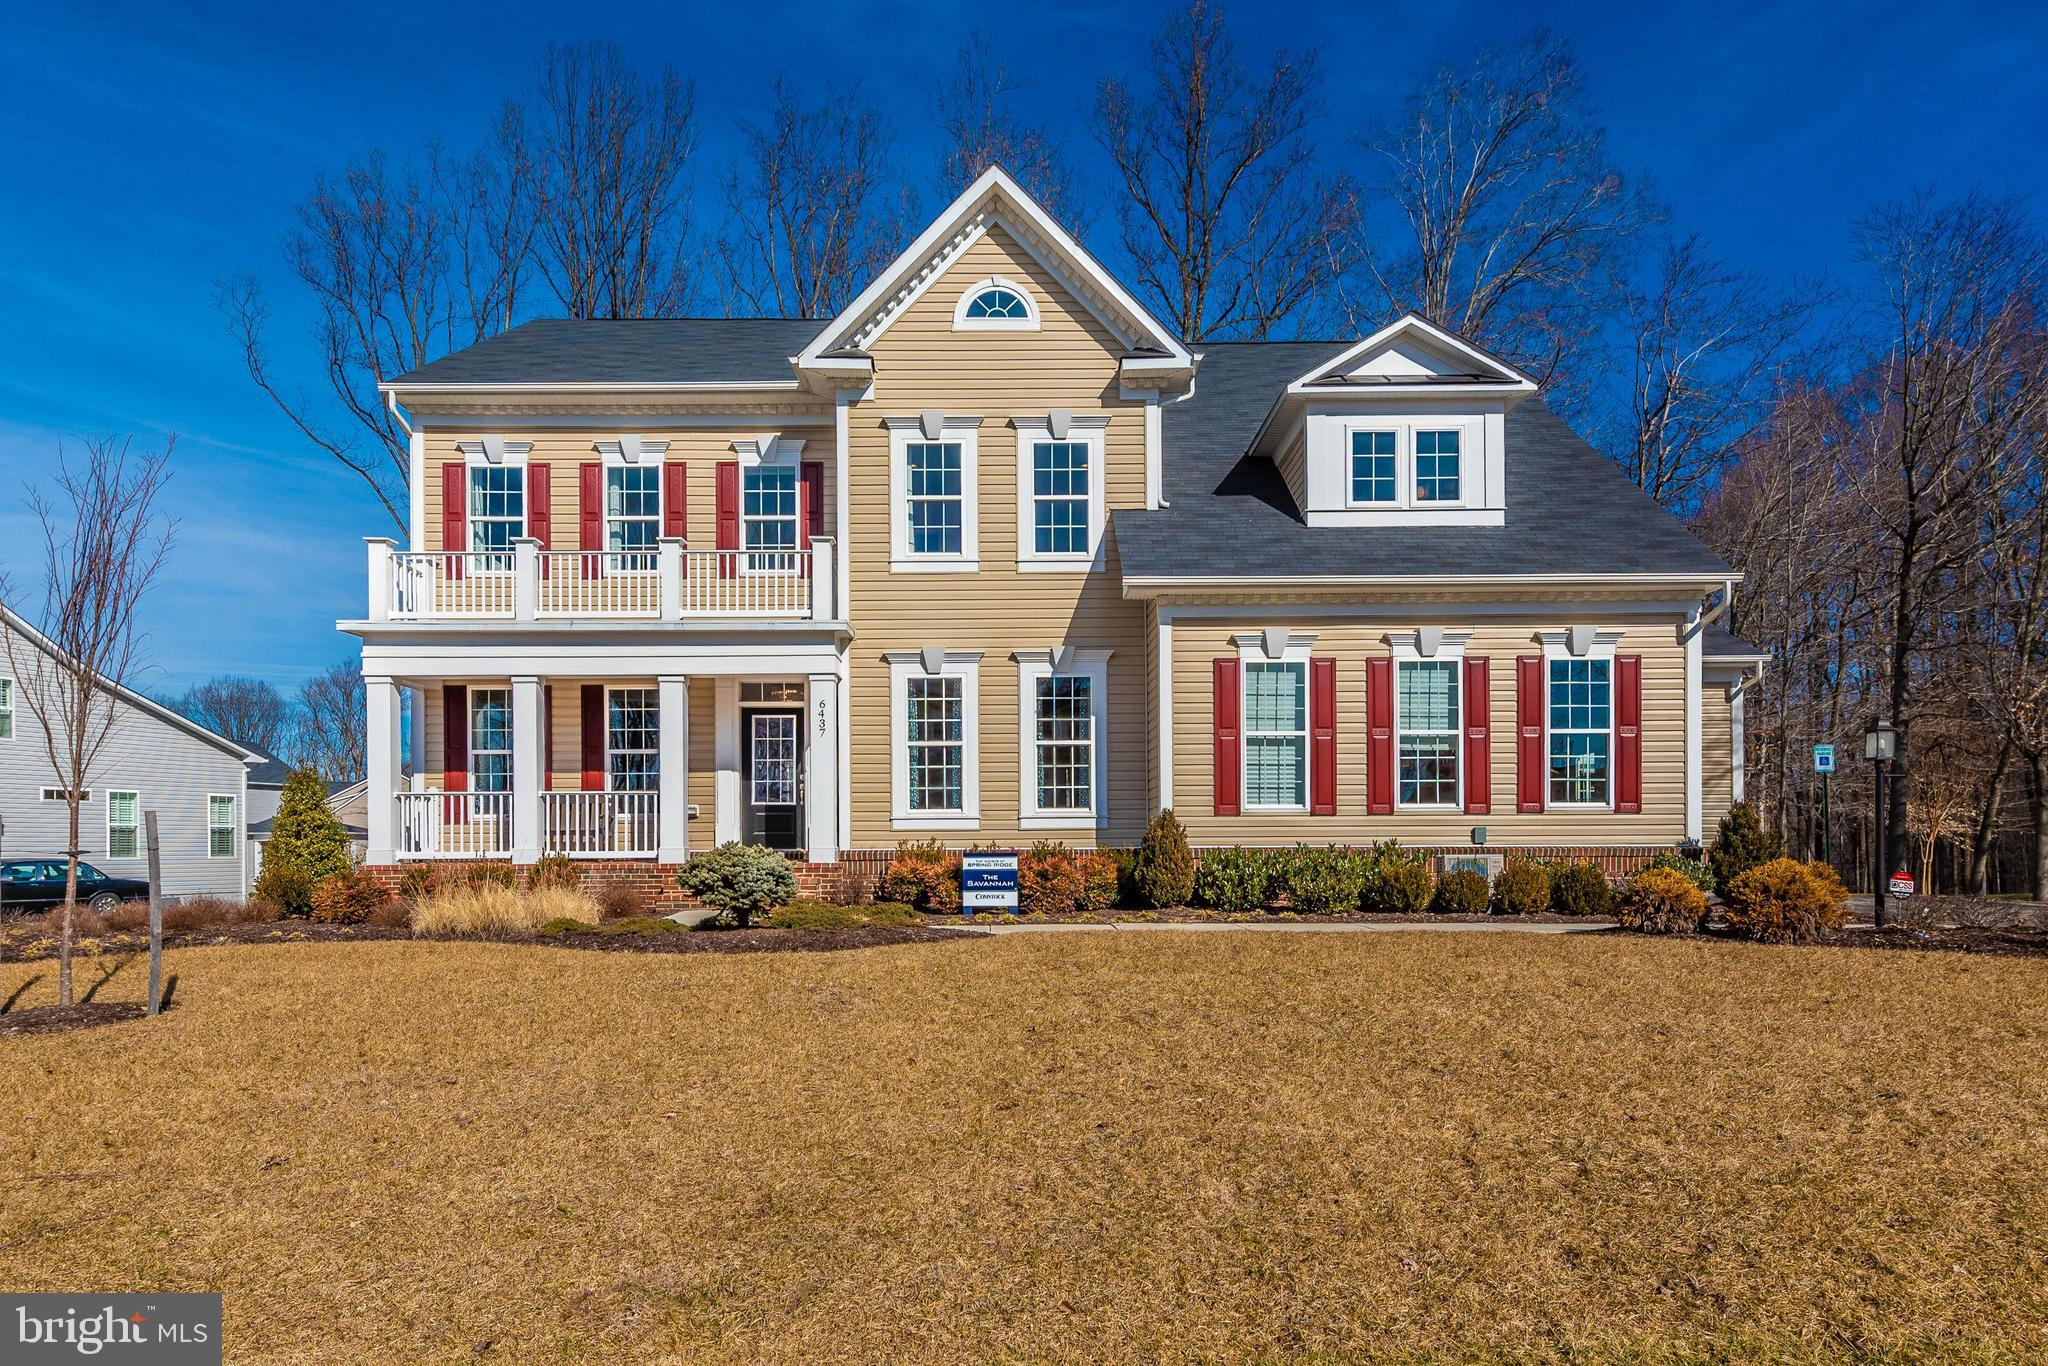 6437 DRESDEN PLACE, FREDERICK, MD 21701